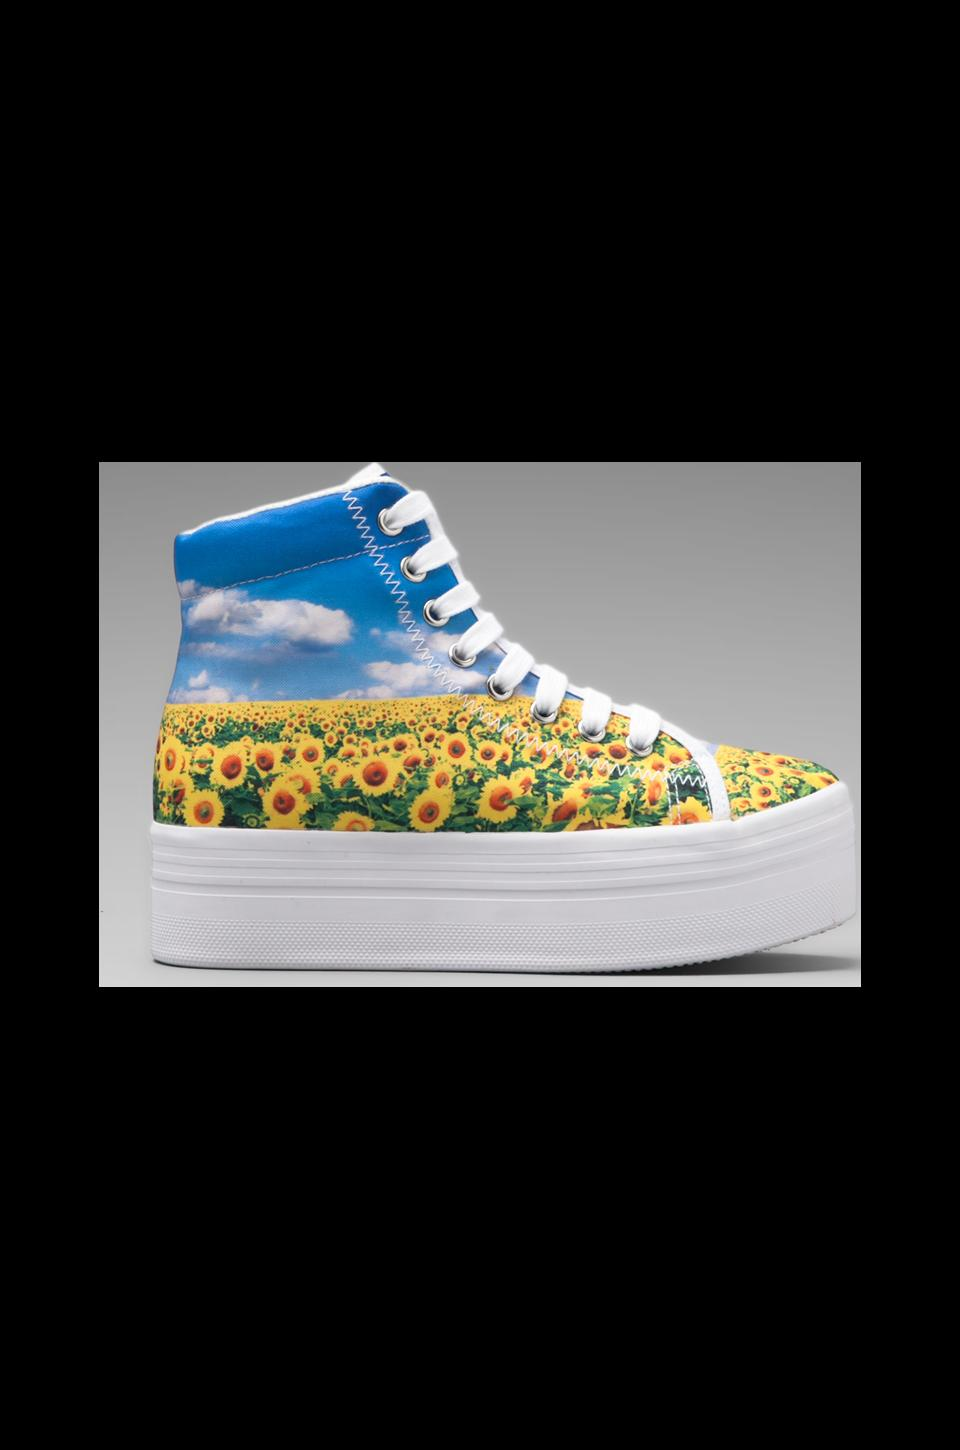 Jeffrey Campbell Homg Hi-Top Sneaker in Sunflowers